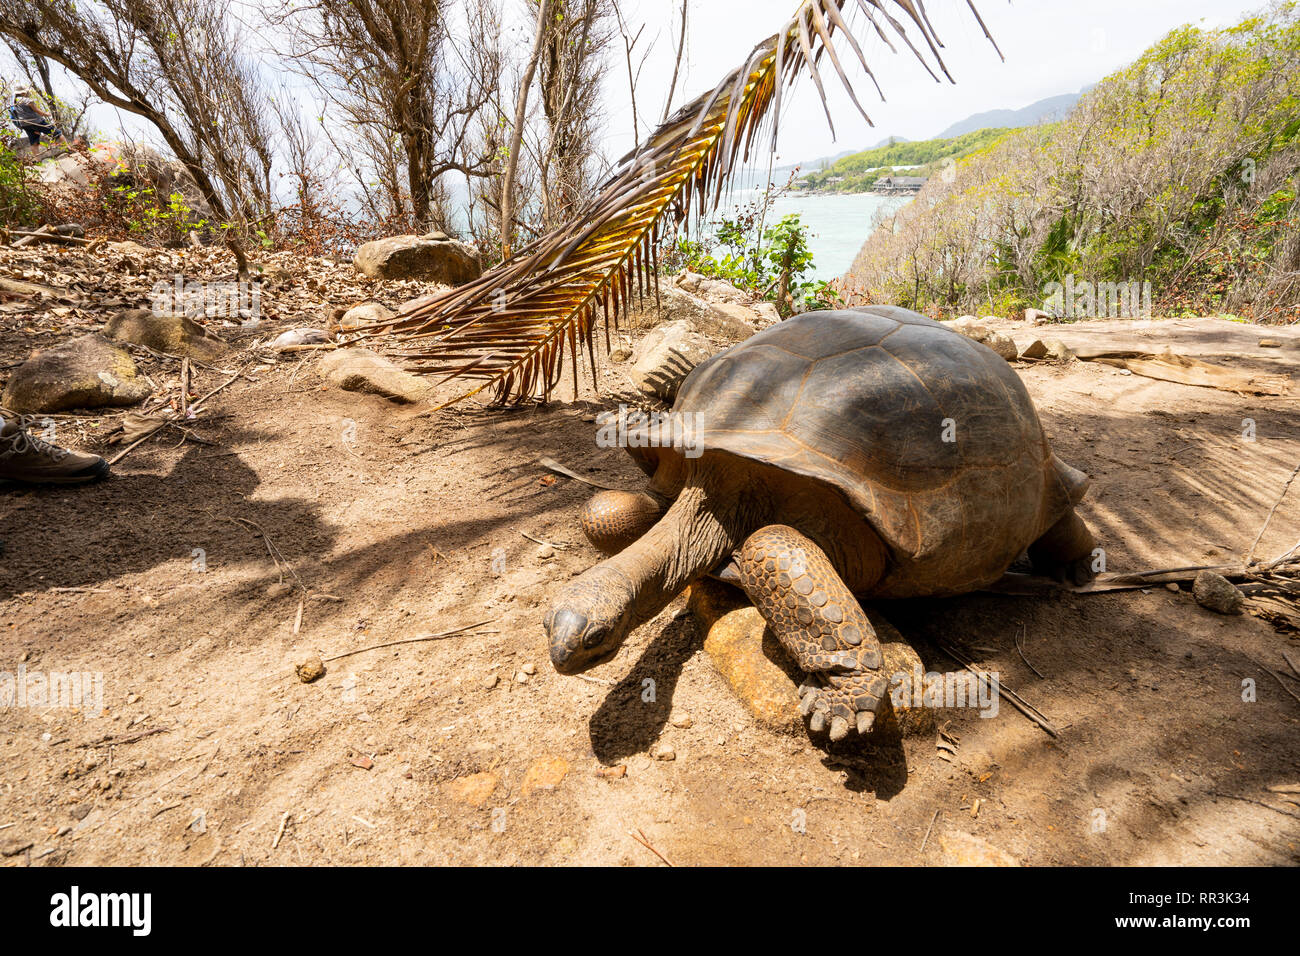 The Aldabra giant tortoise (Aldabrachelys gigantea), from the islands of the Aldabra Atoll in the Seychelles, is one of the largest tortoises in the w - Stock Image